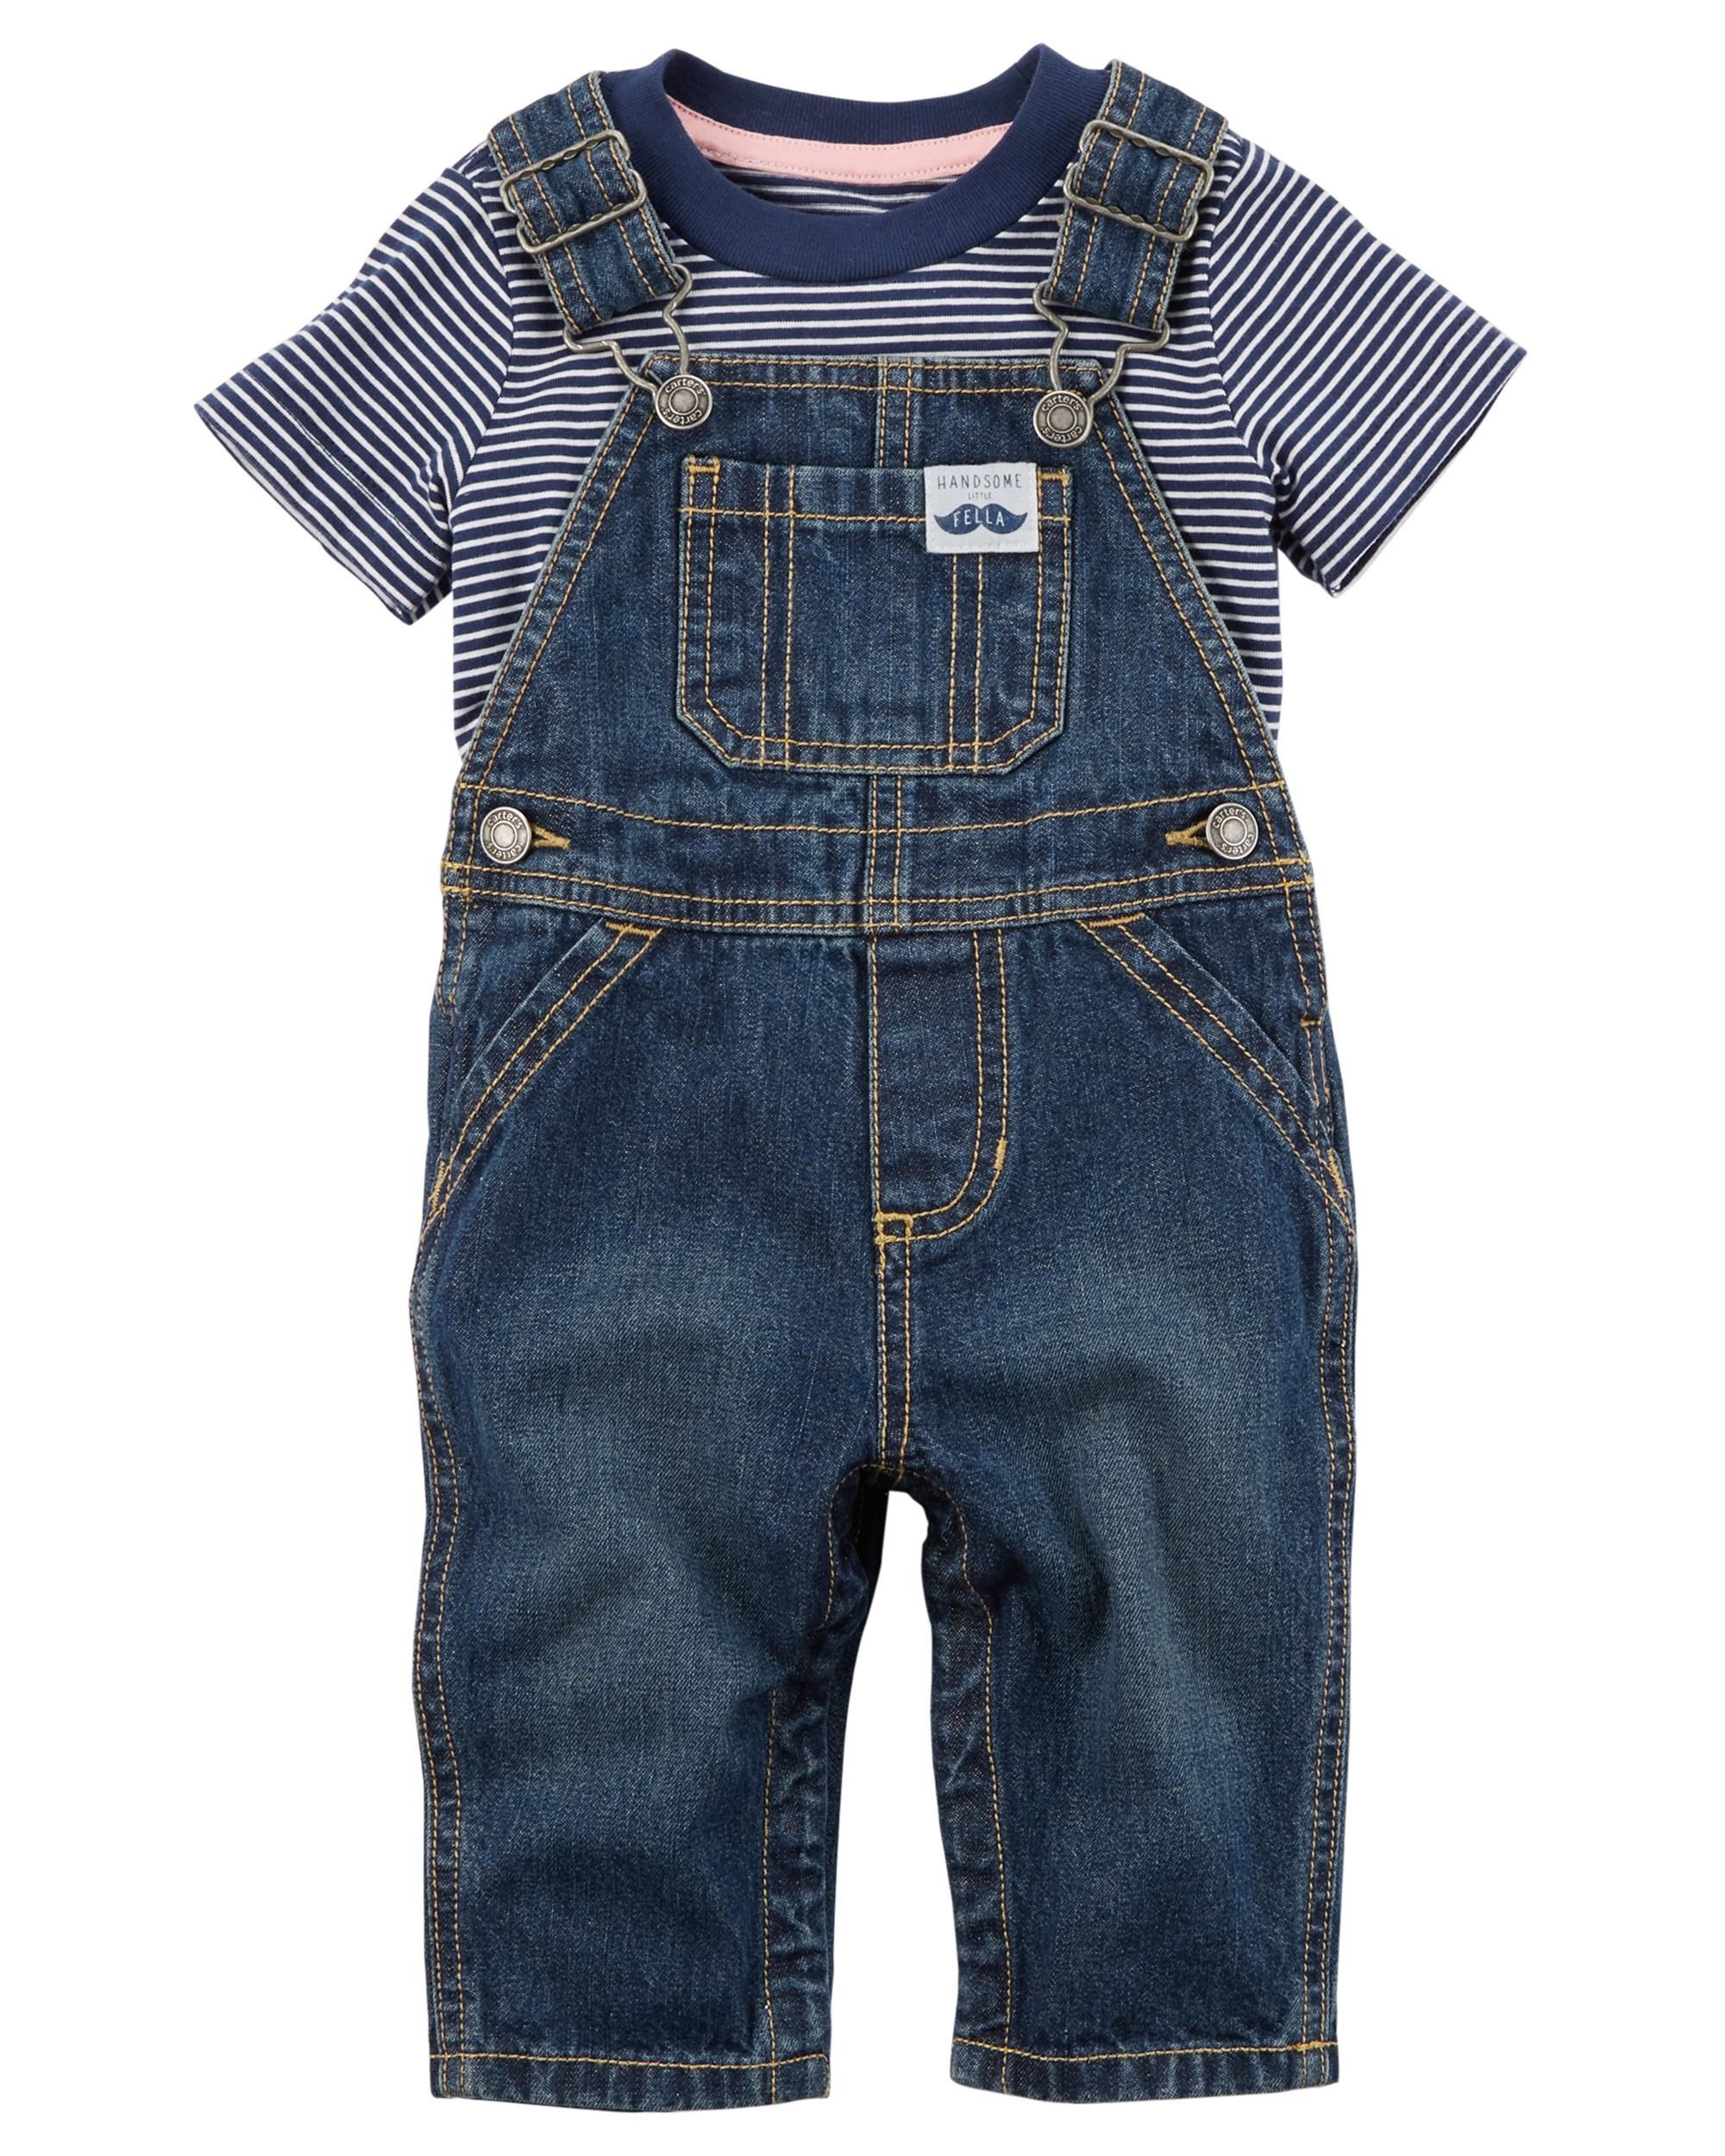 53ee5d9d2 With a striped tee to go under classic denim overalls, this 2-piece set  makes a handsome and ready-to-go outfit.